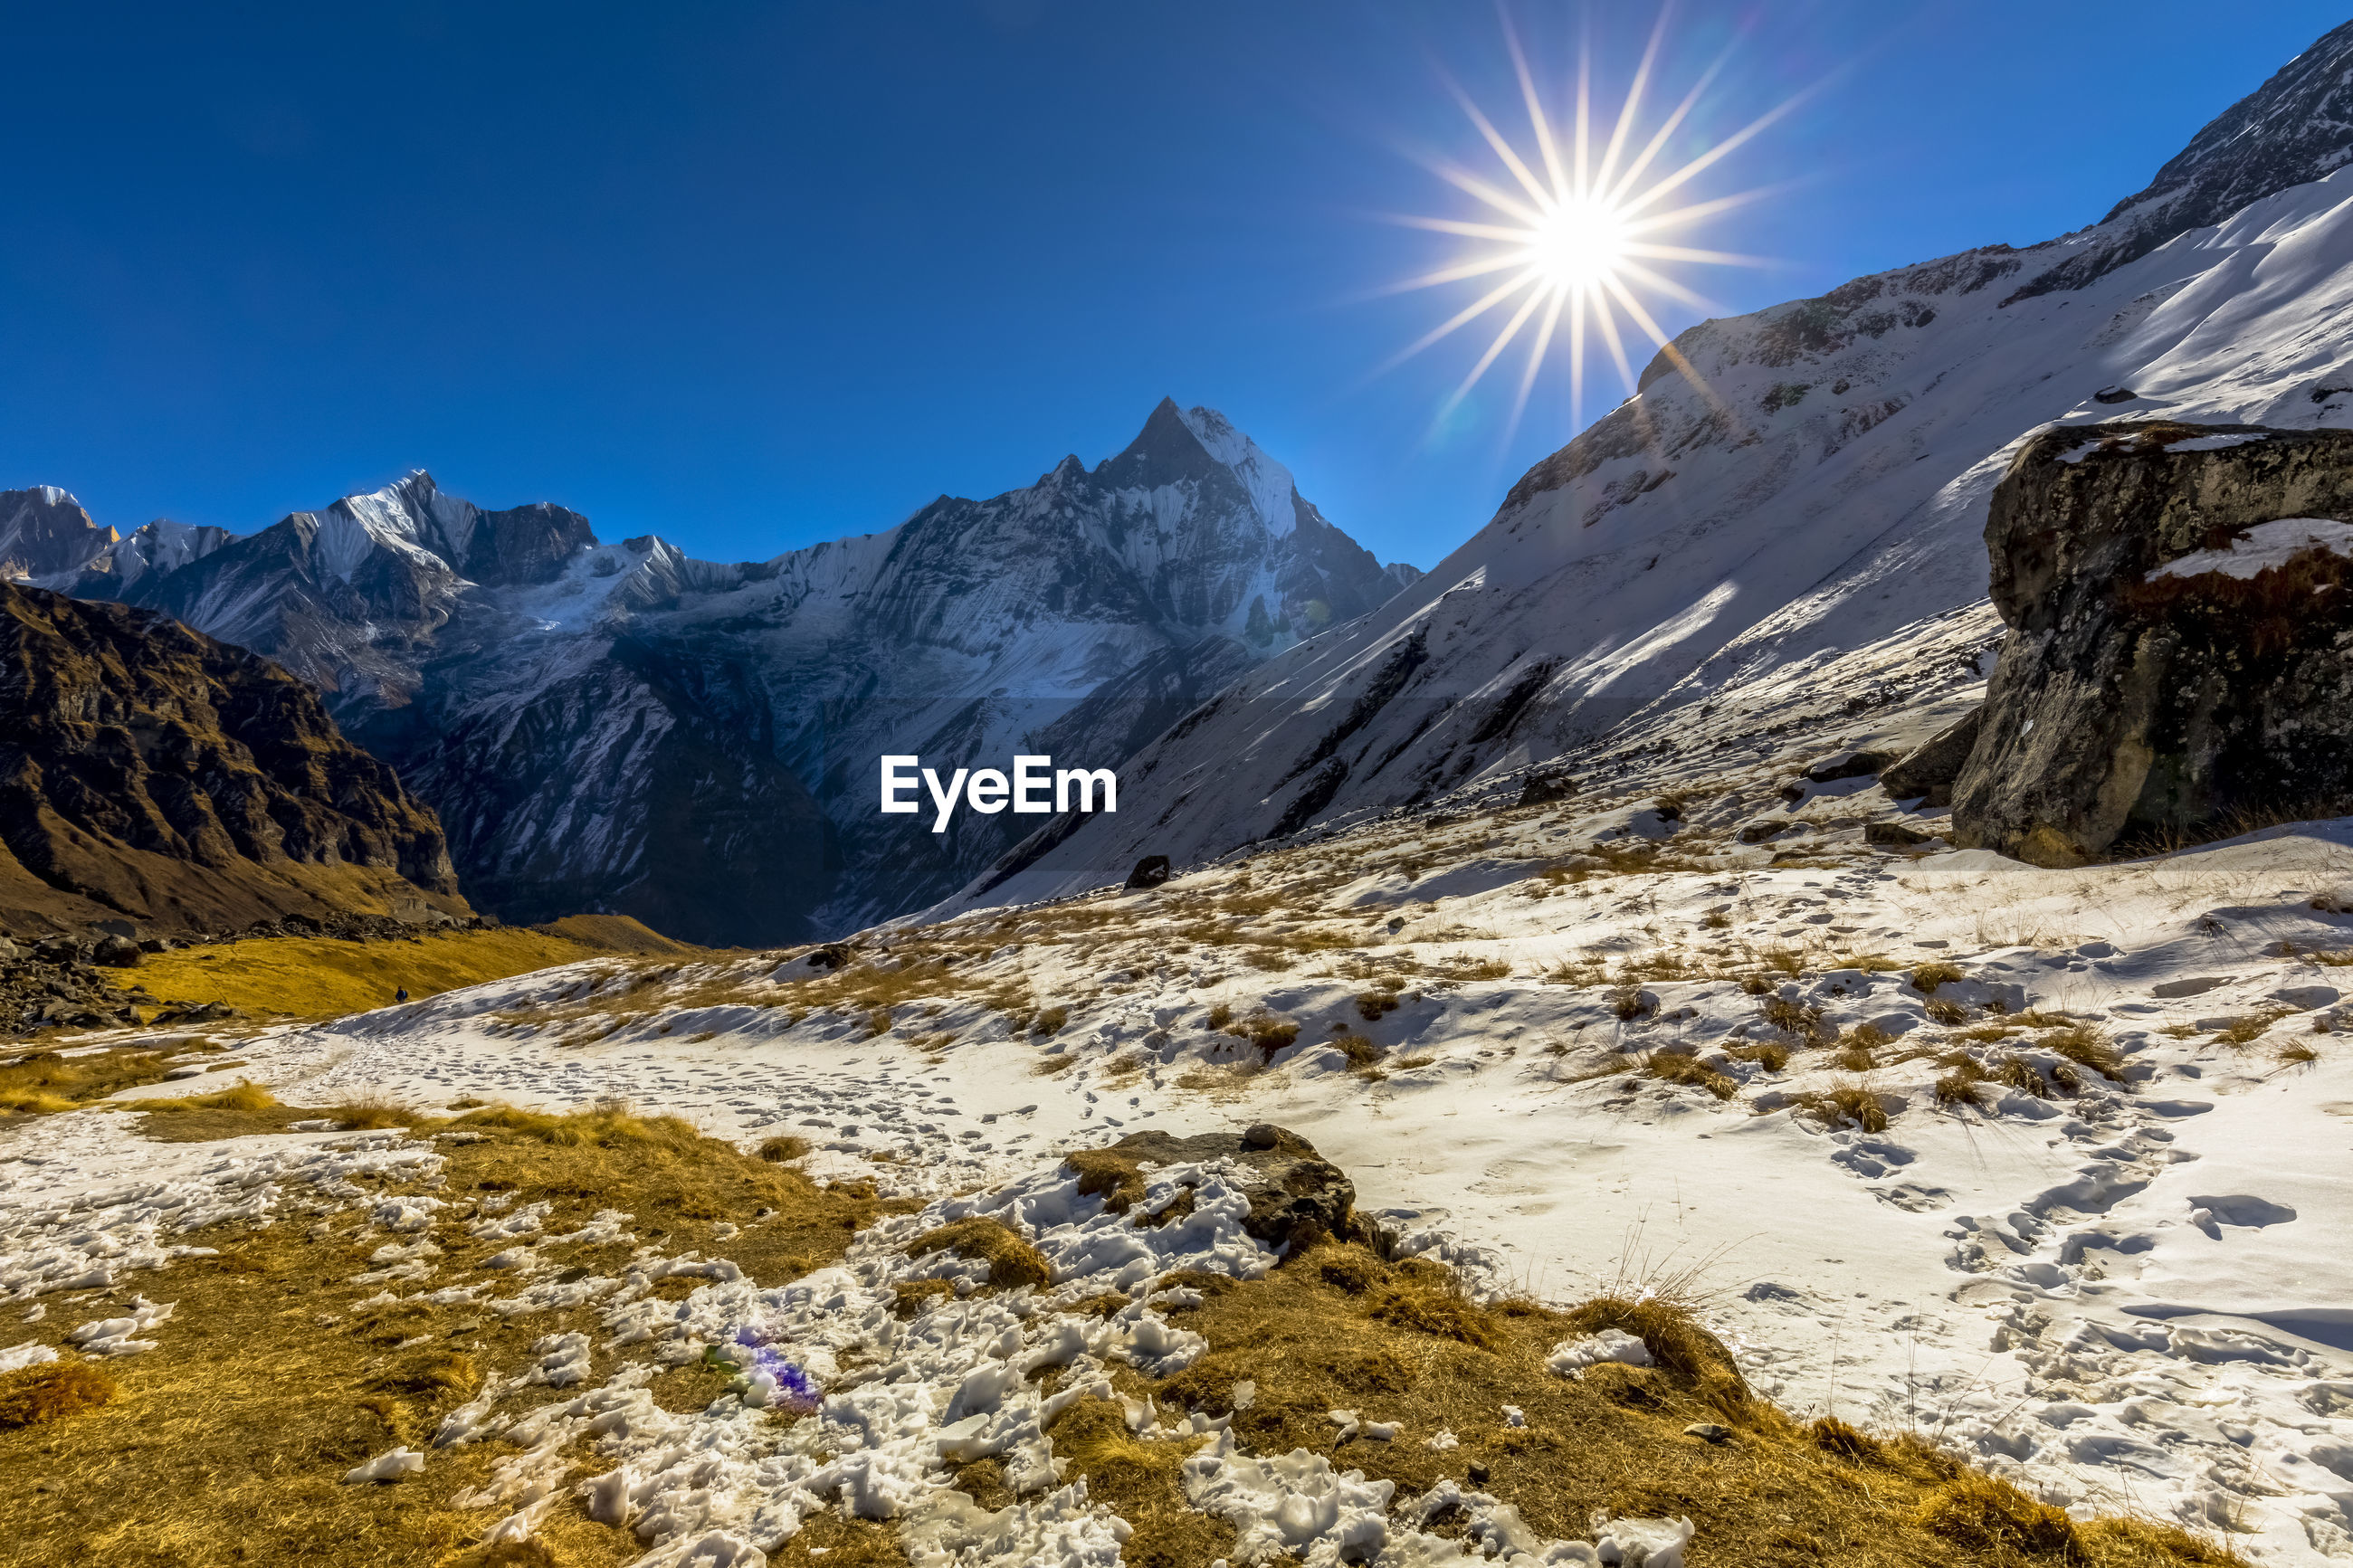 SCENIC VIEW OF SNOWCAPPED MOUNTAINS AGAINST BRIGHT SKY